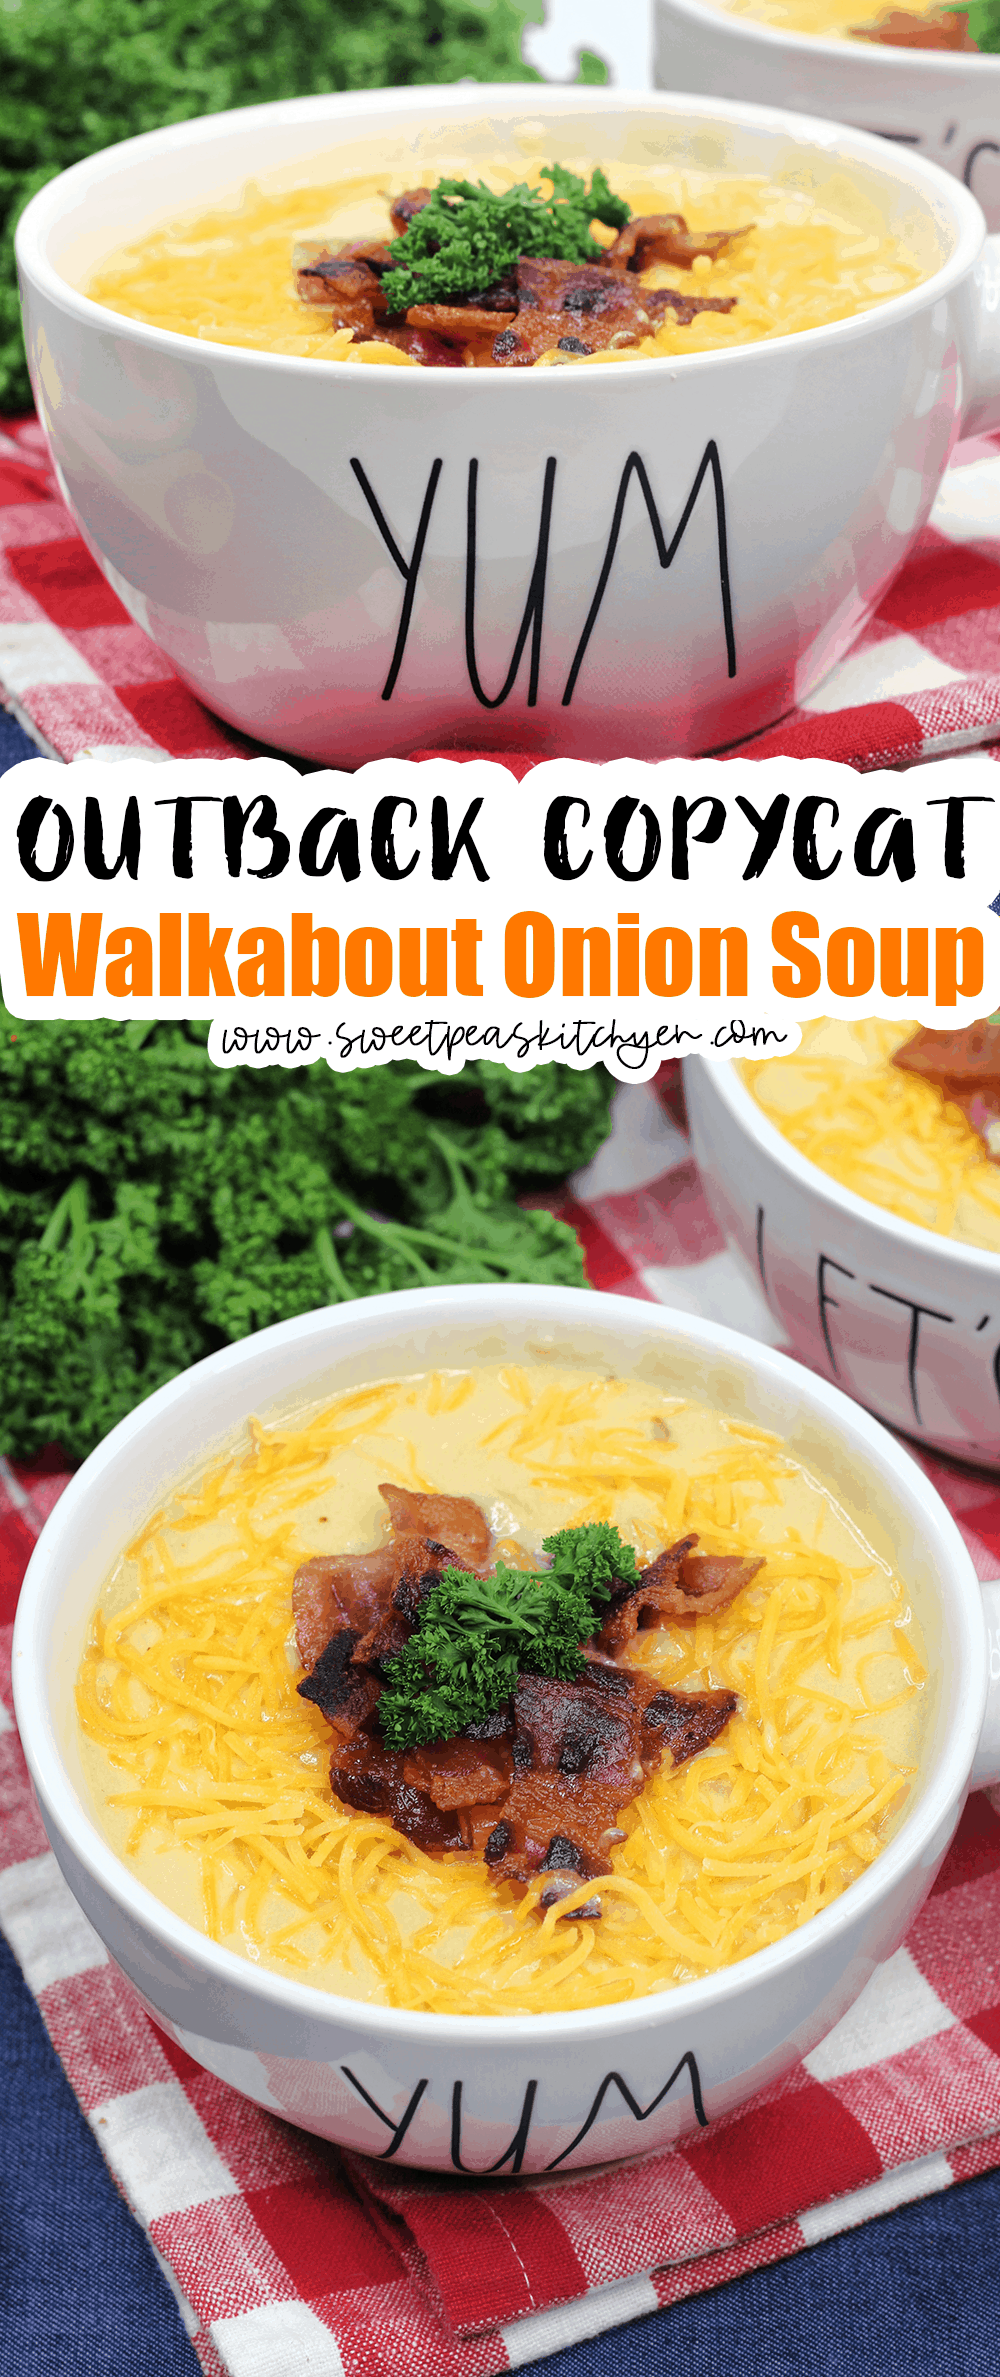 Outback Copycat Walkabout Onion Soup